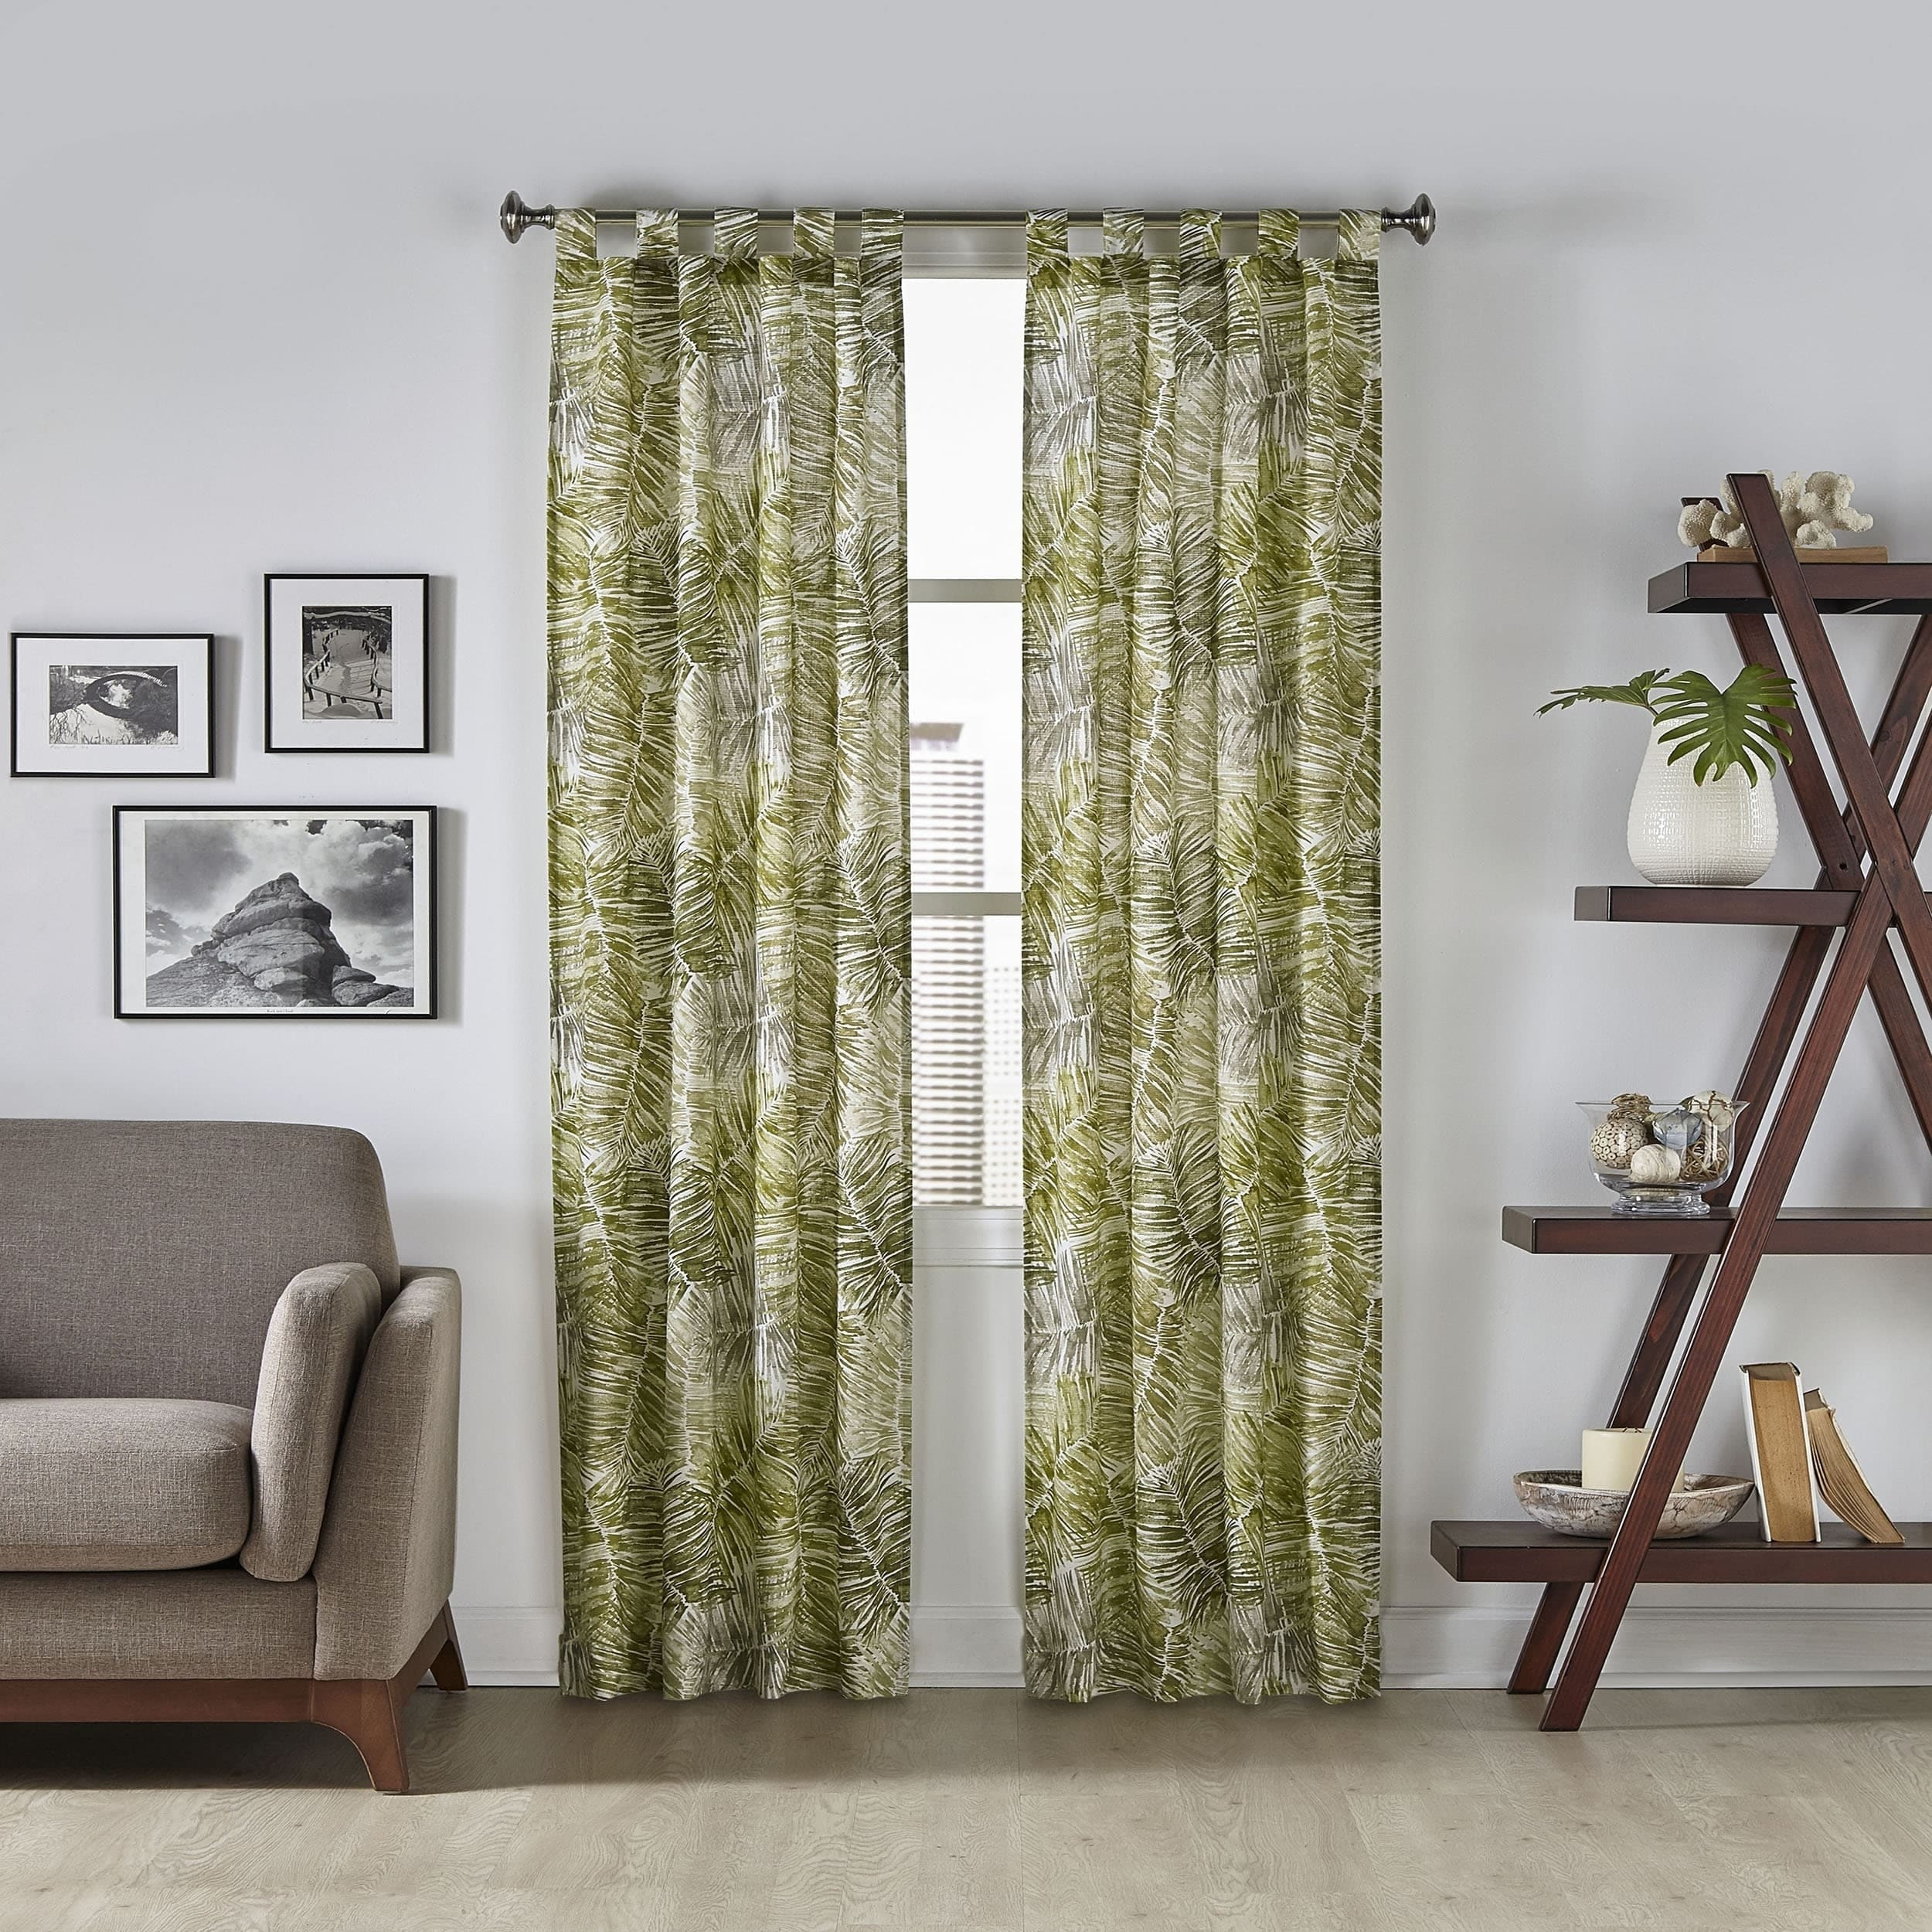 Pairs to Go Marley Tropical Window Curtain Panel Pair (60...